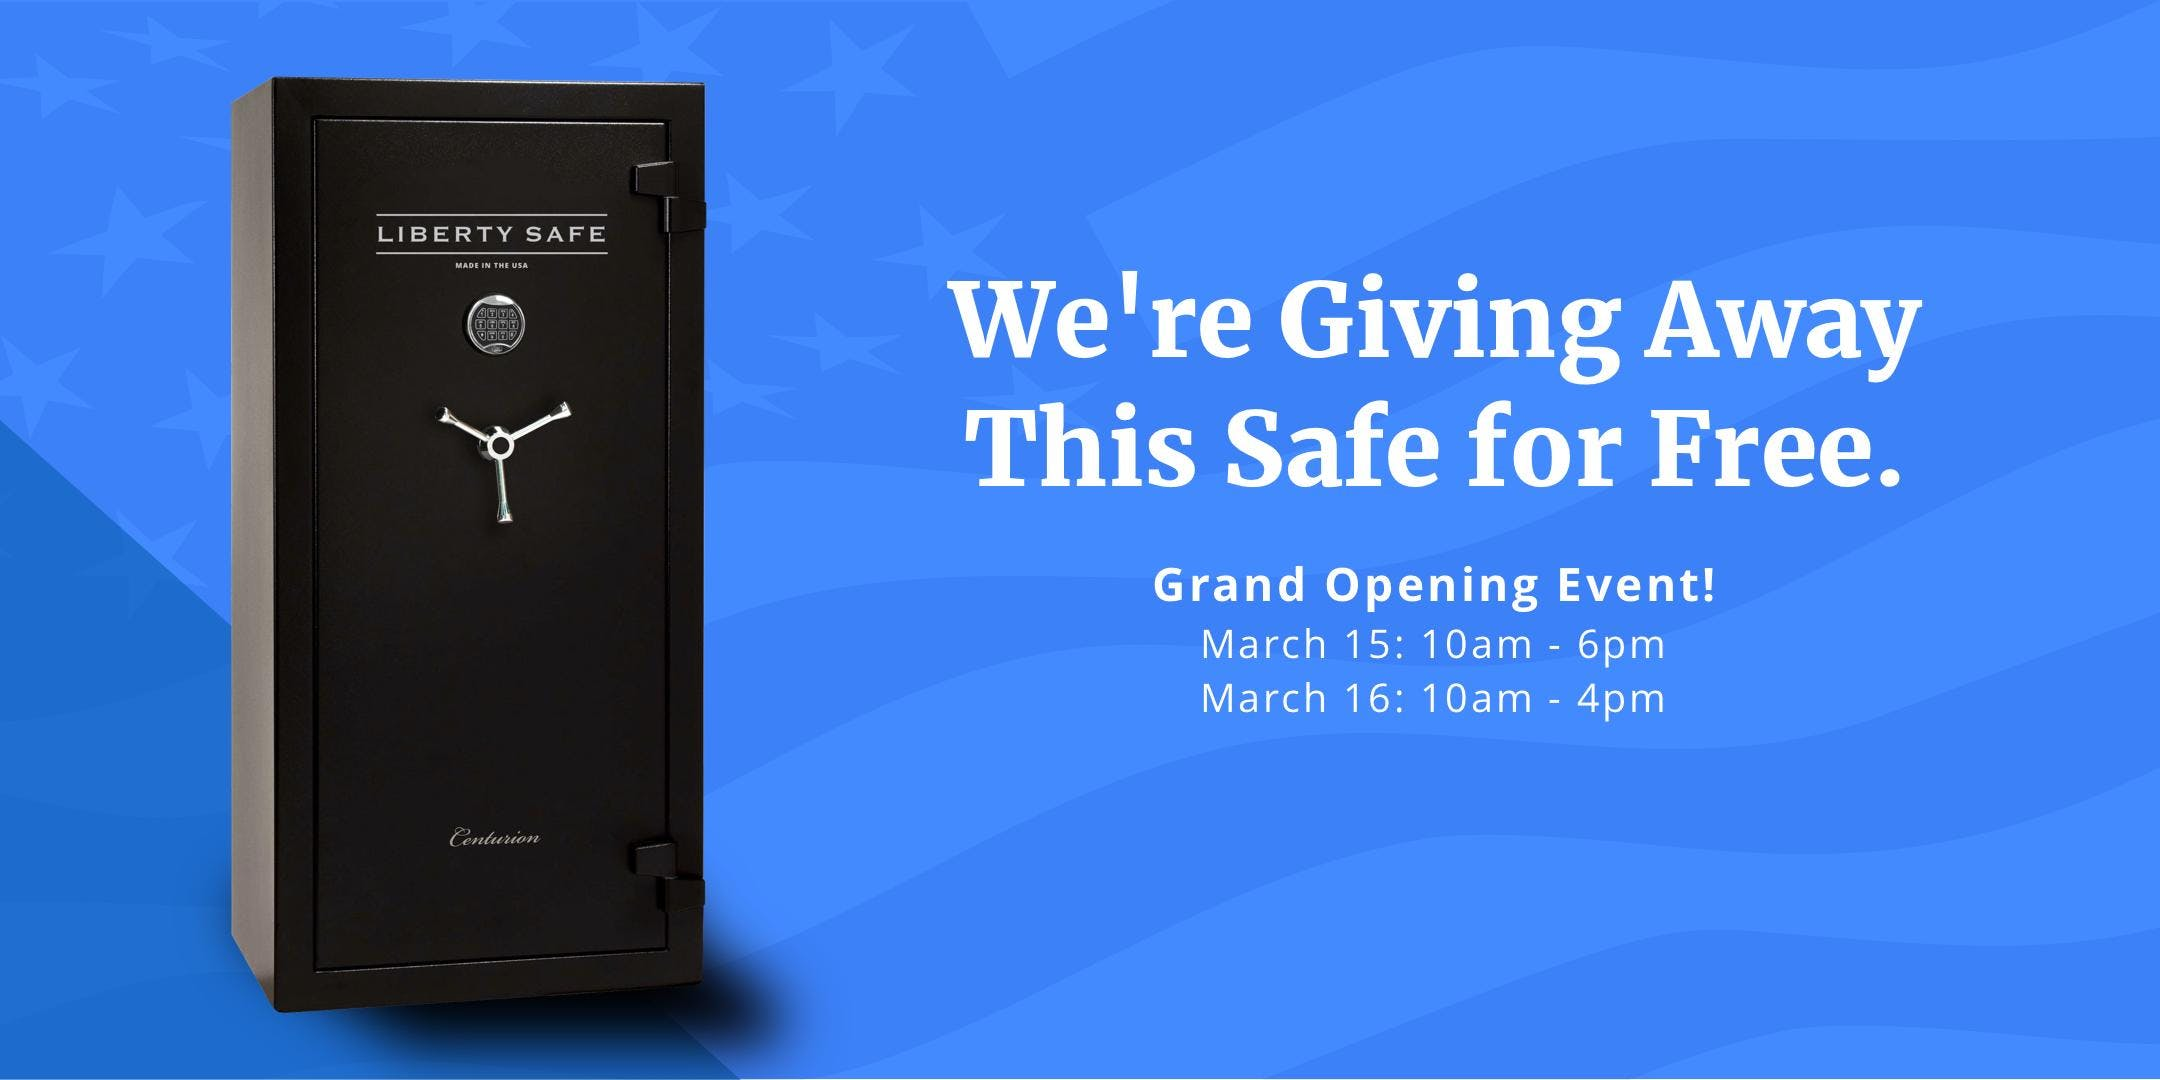 Liberty Safe Grand Opening - Enter To Win a Fire Resistant